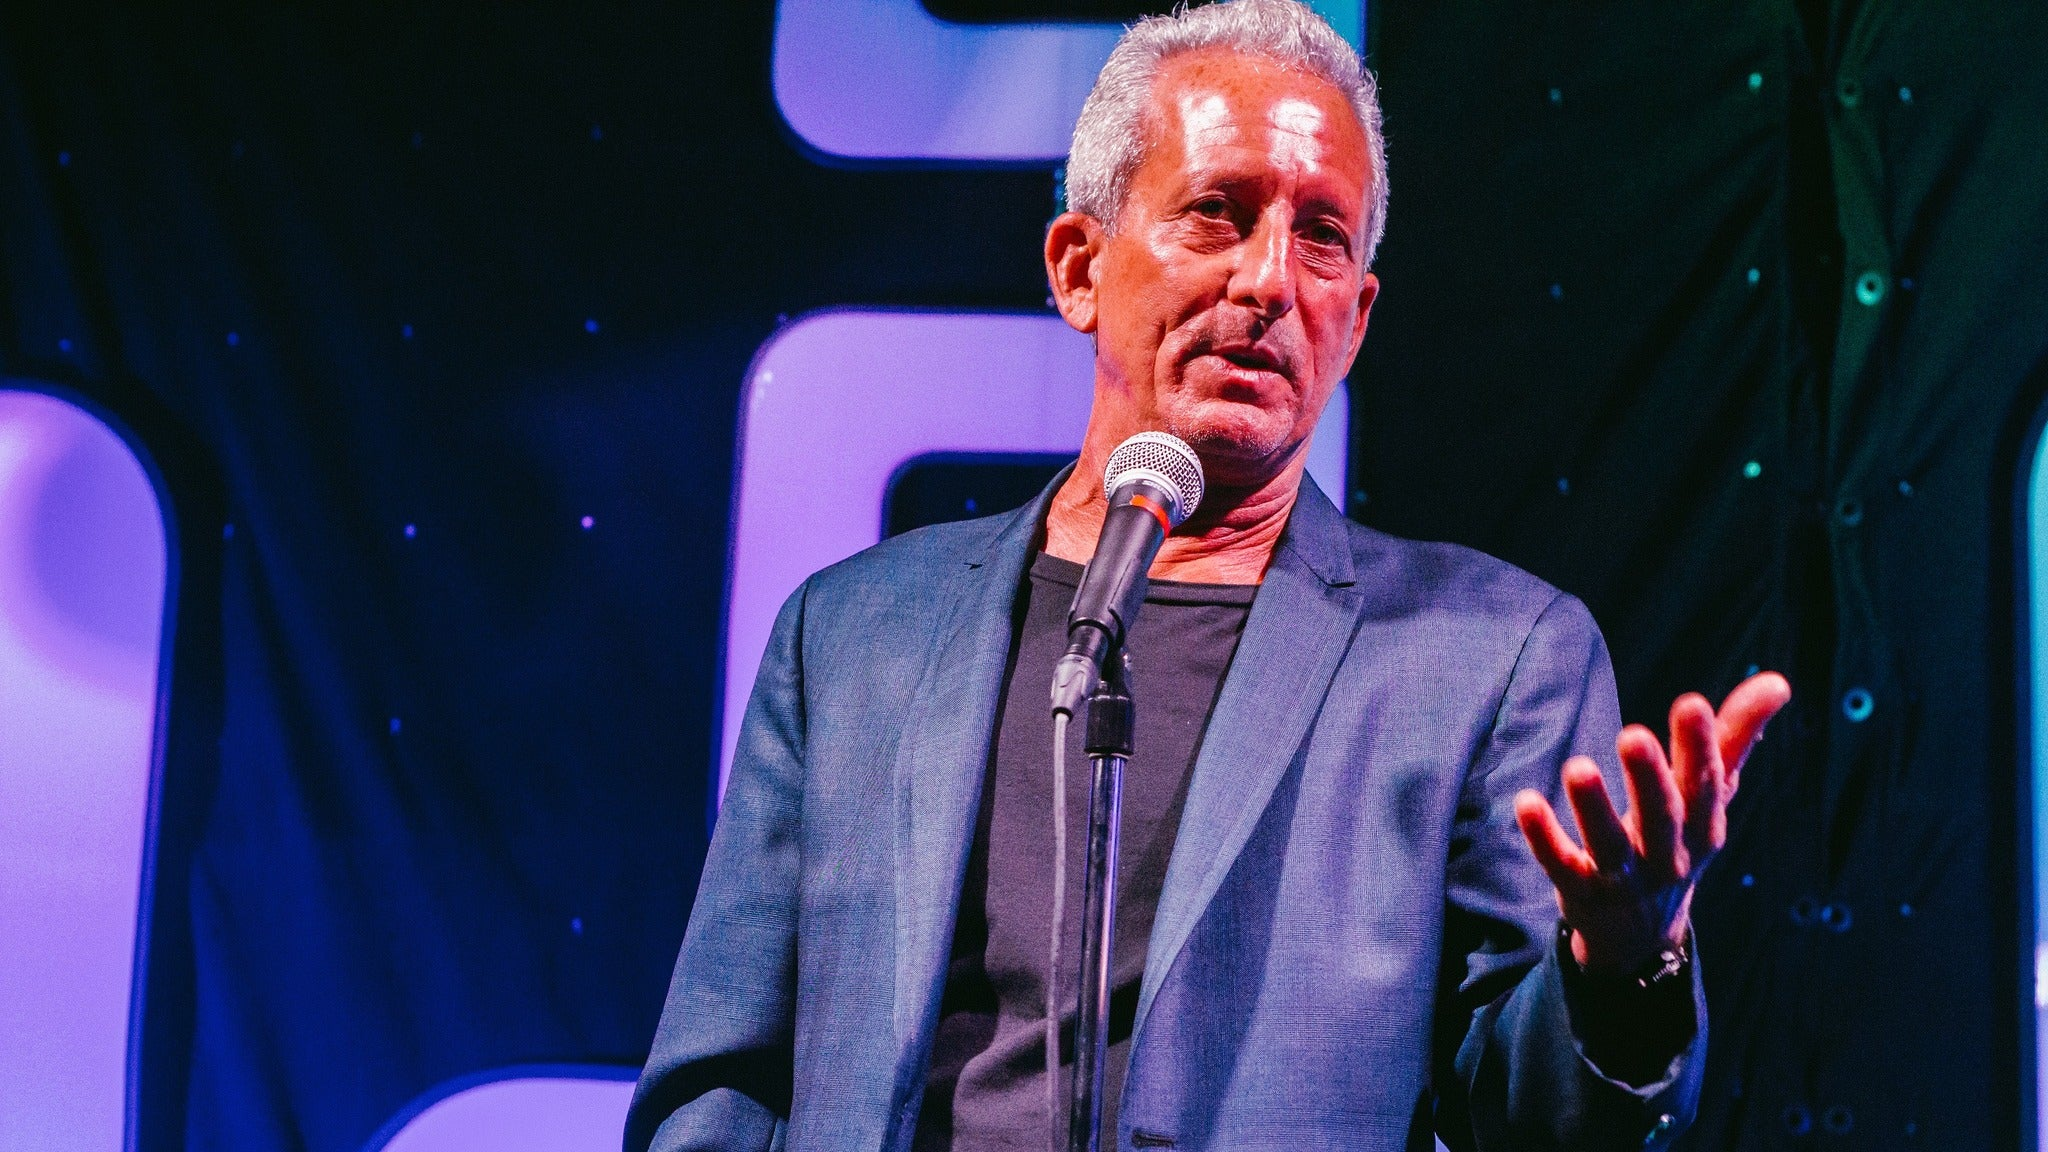 Bobby Slayton at Oxnard Levity Live